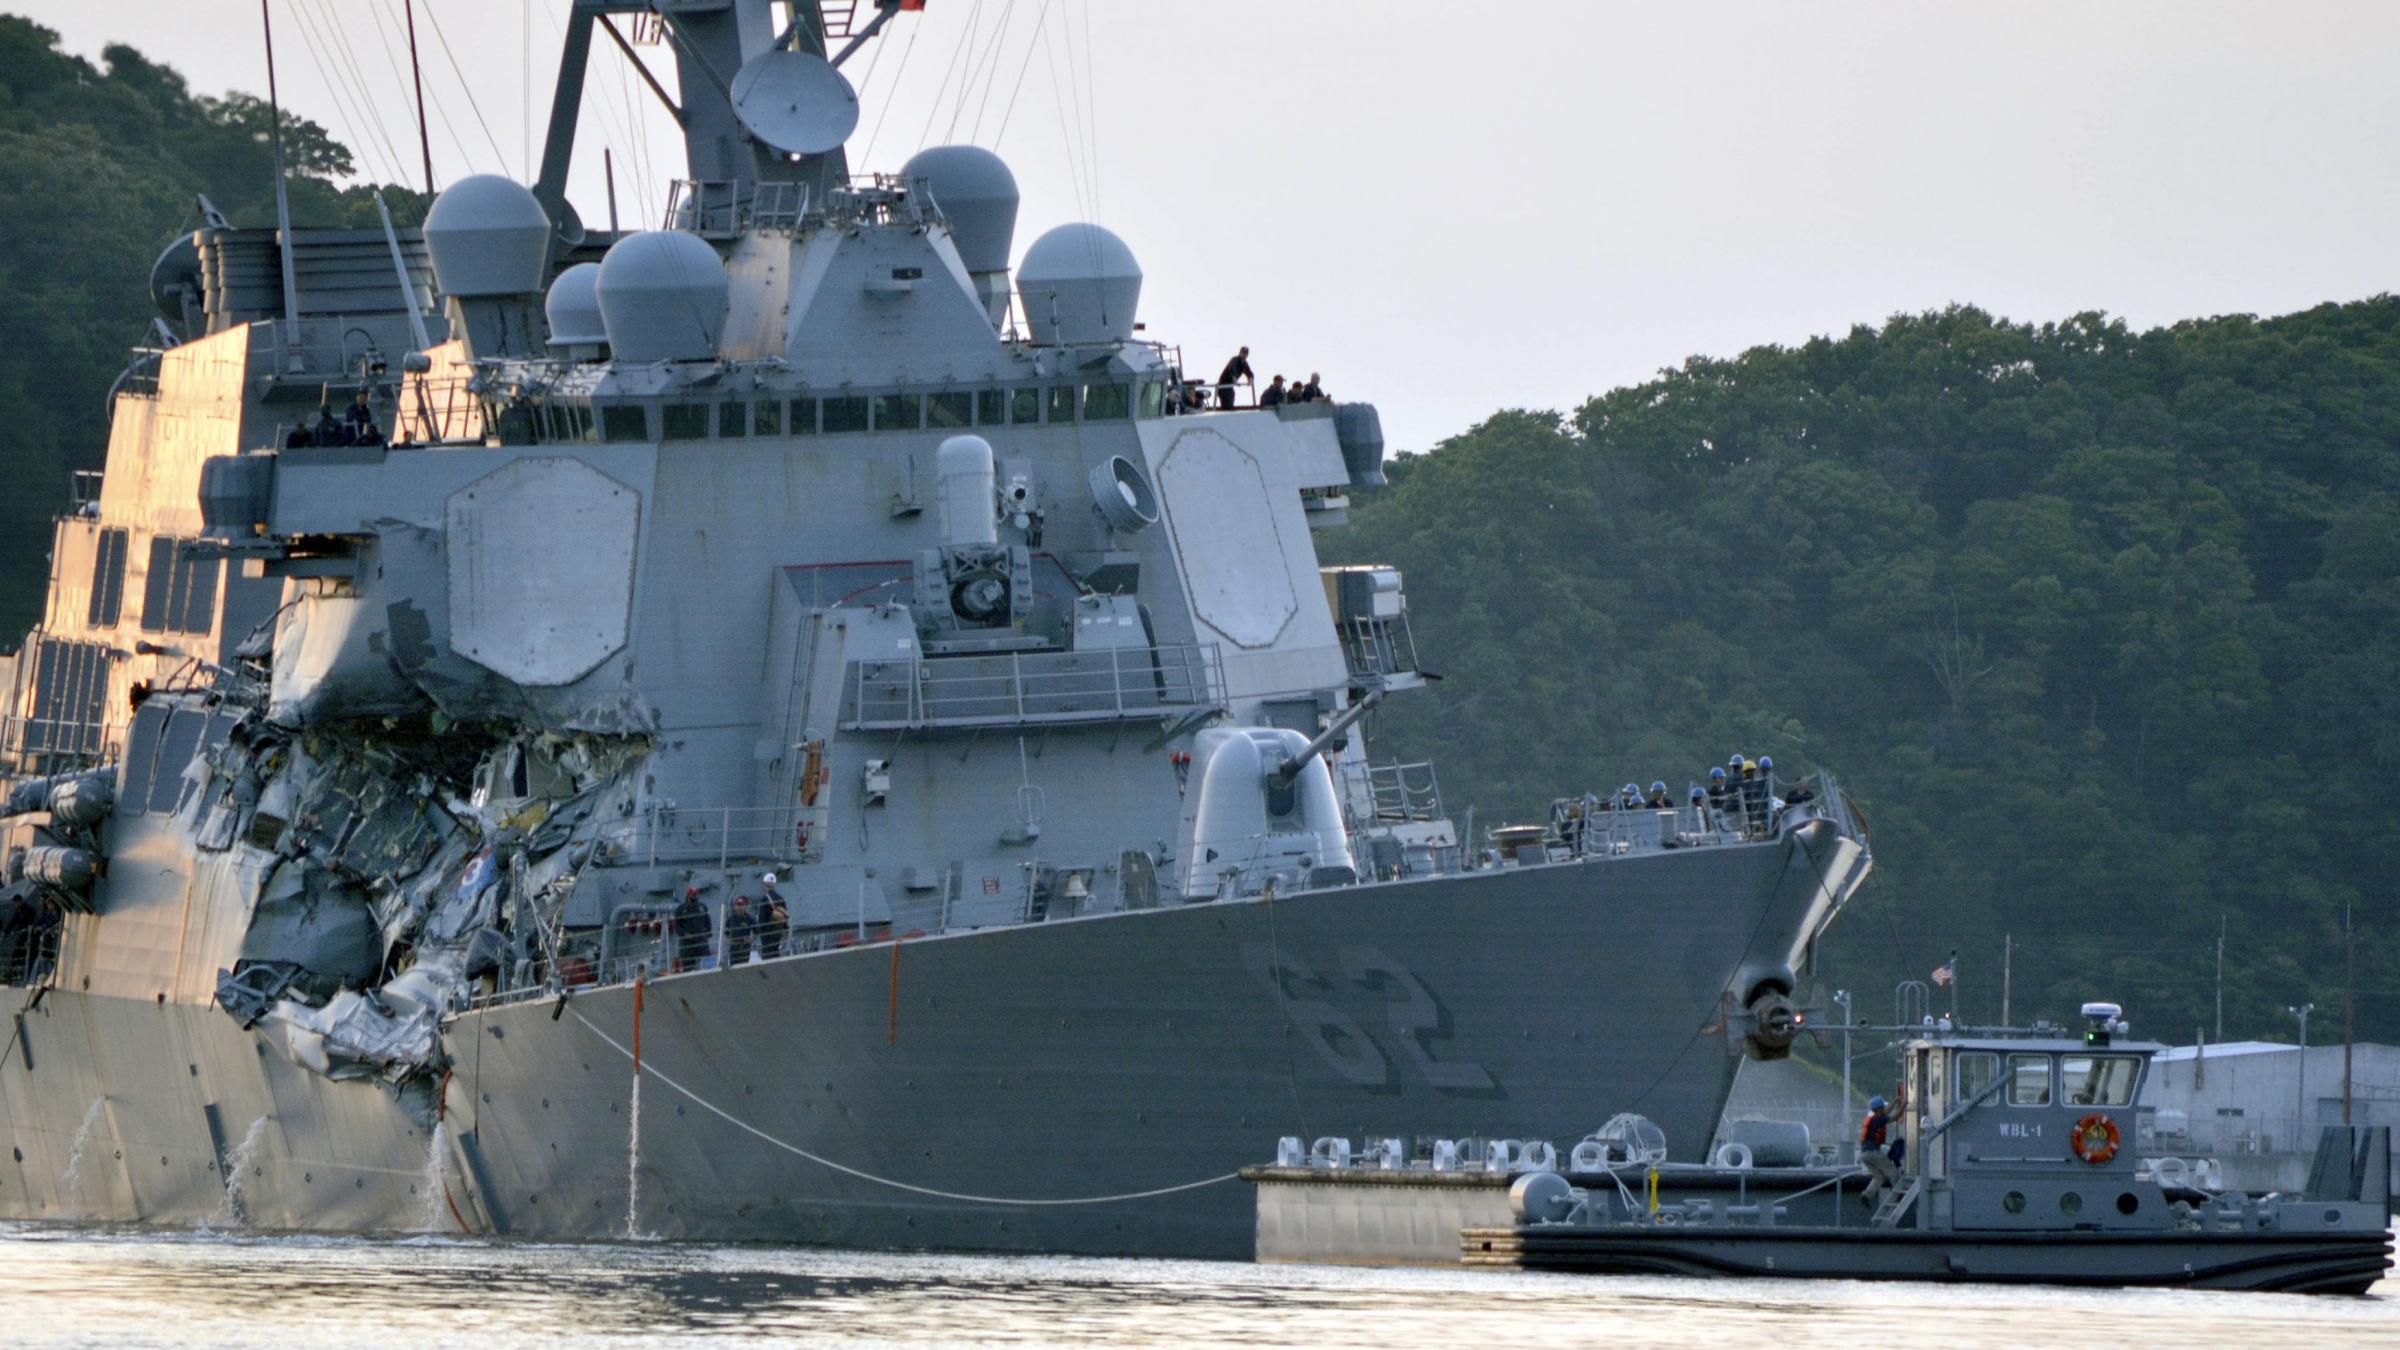 Bodies of several sailors are found aboard damaged United States destroyer